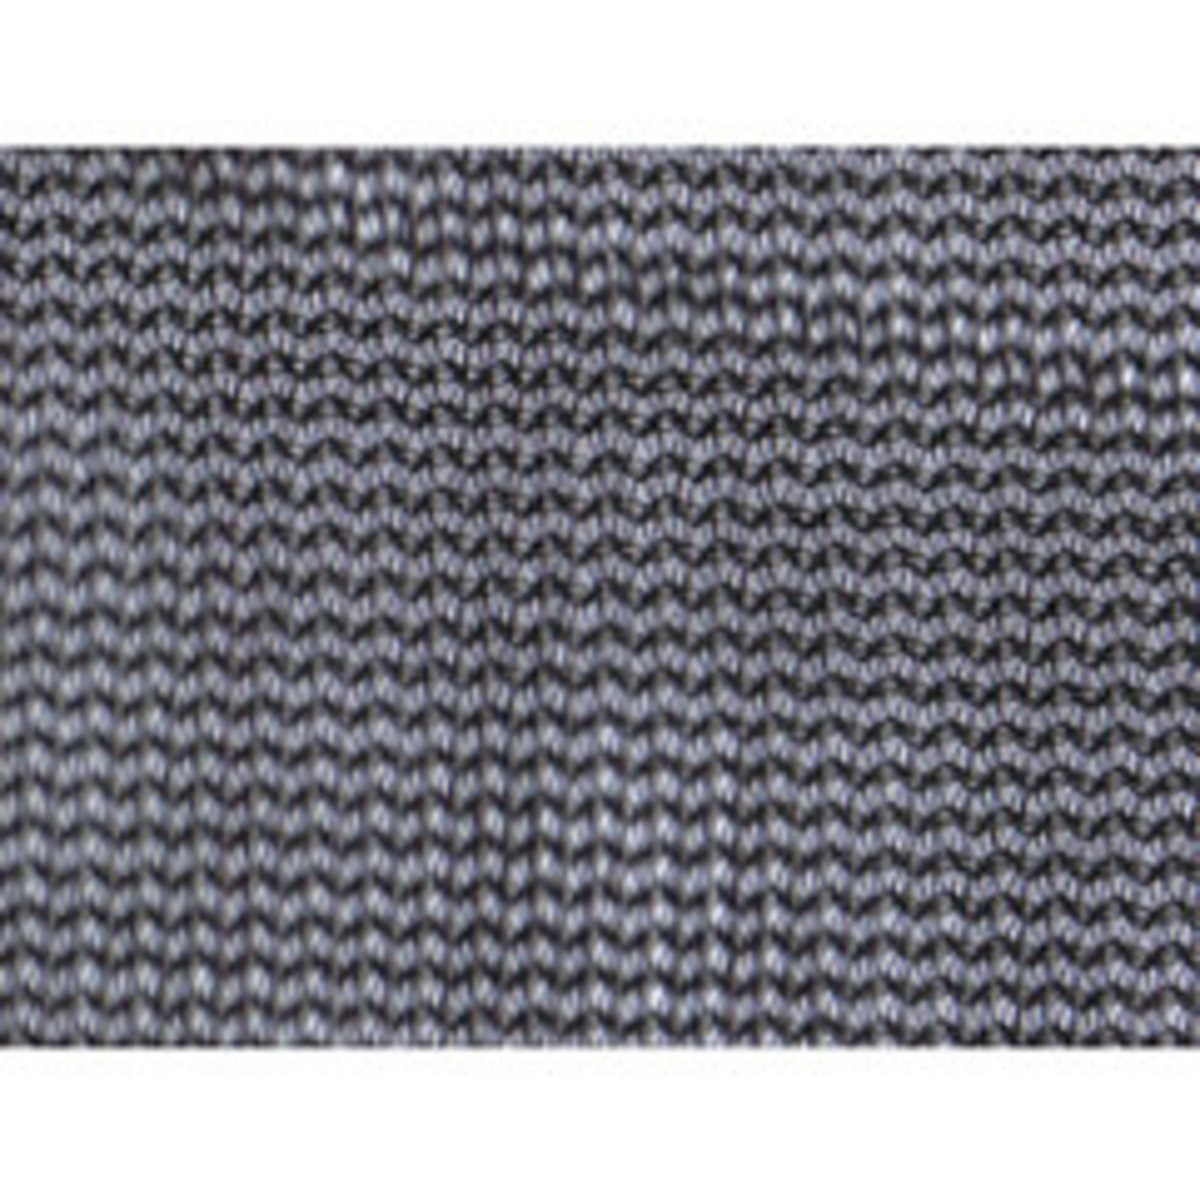 View larger image of Hem & Grommets 20' x 300' Field Netting